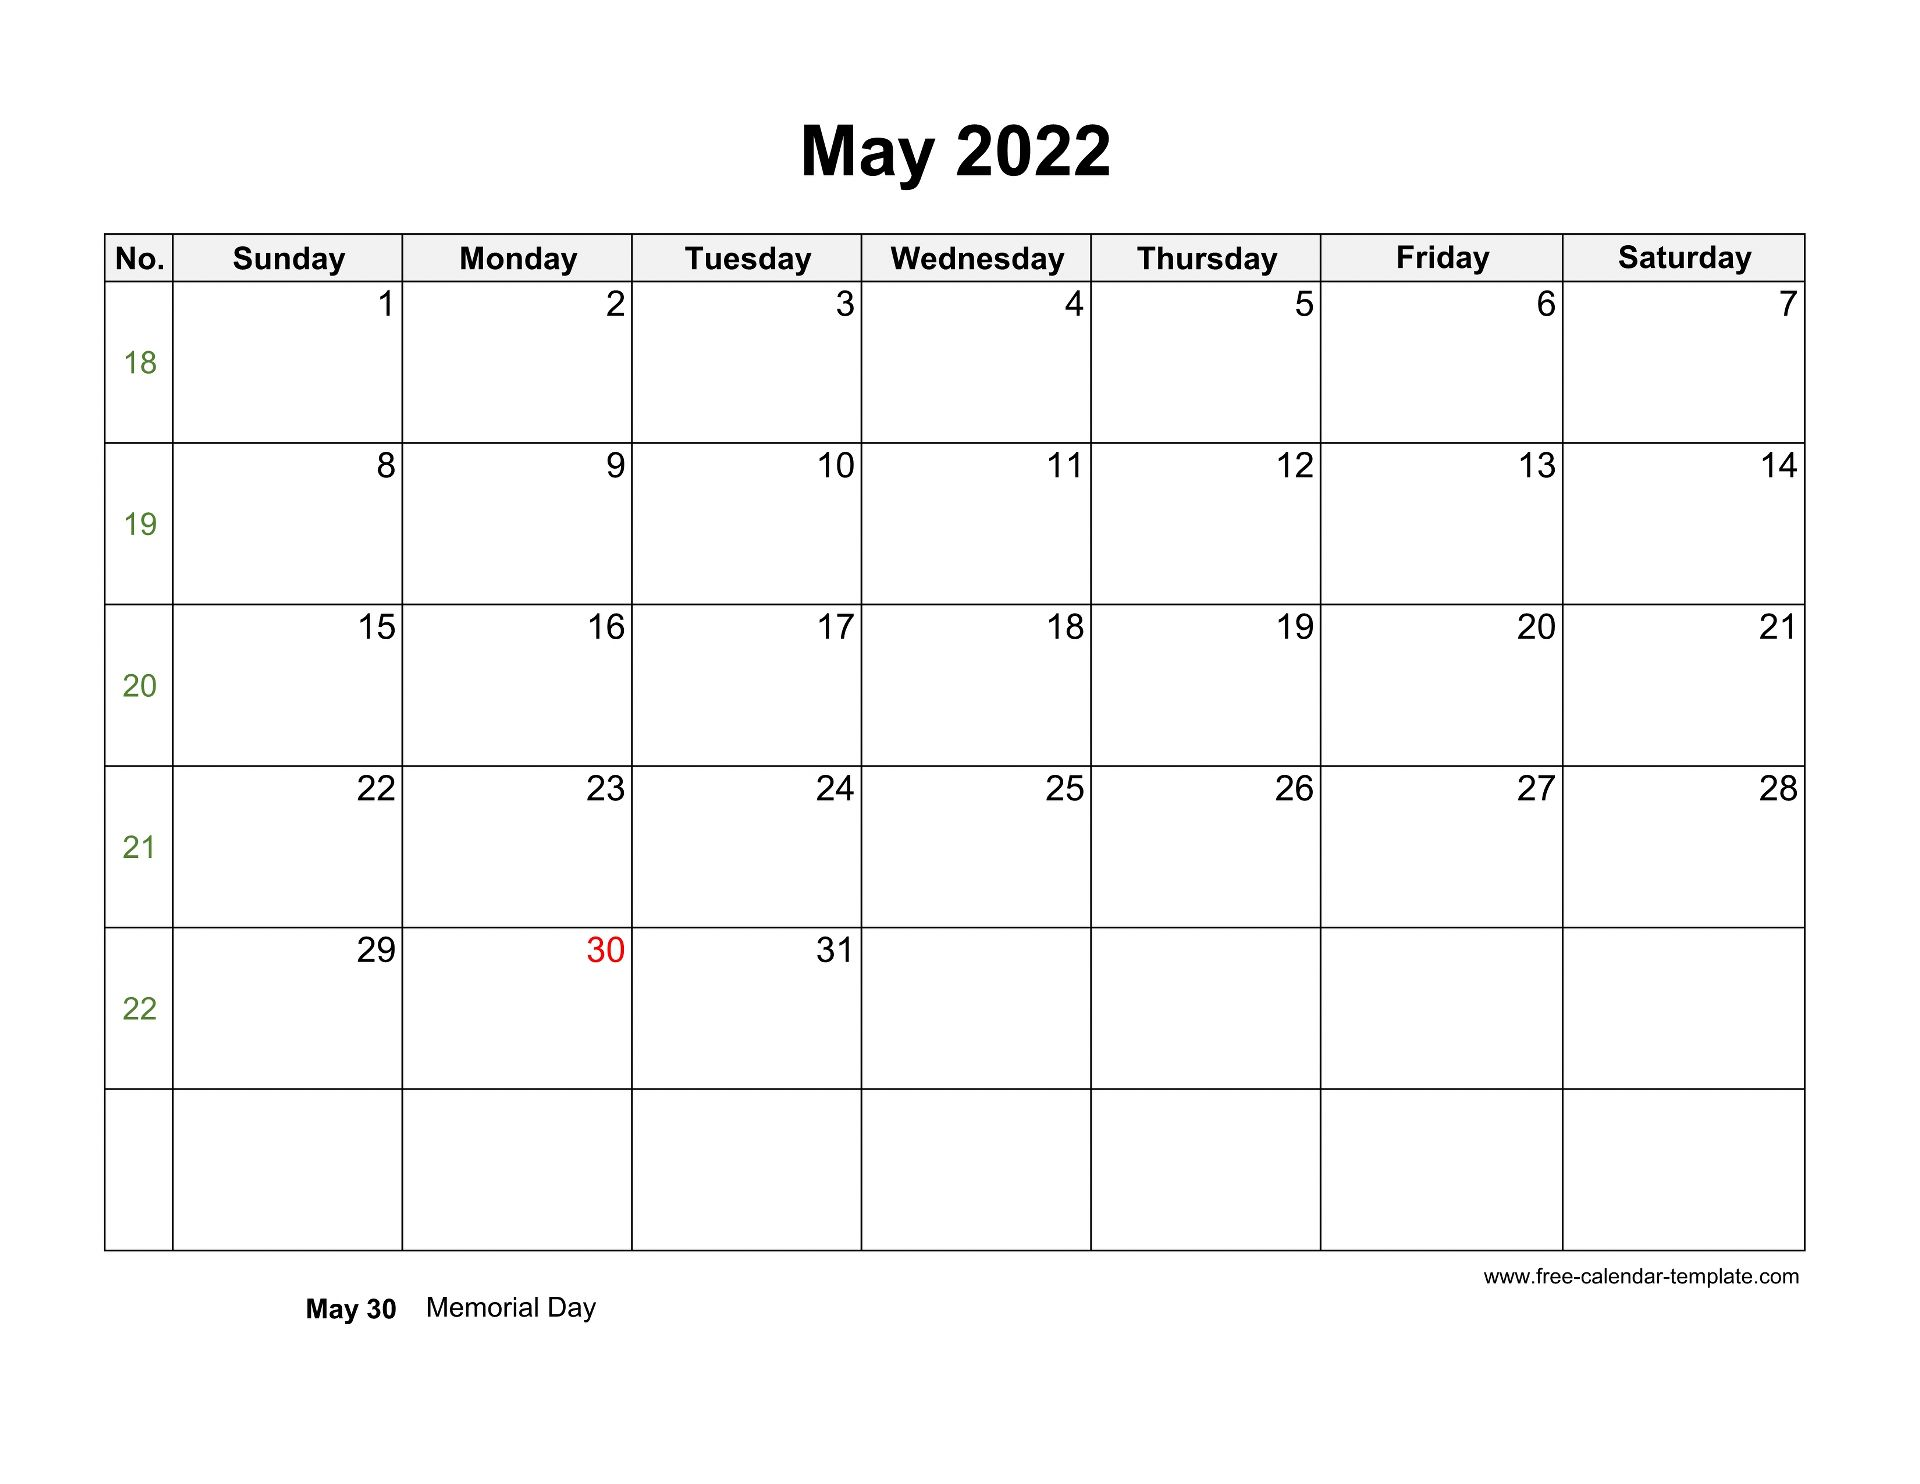 Free 2022 Calendar Blank May Template (horizontal) | Free ...